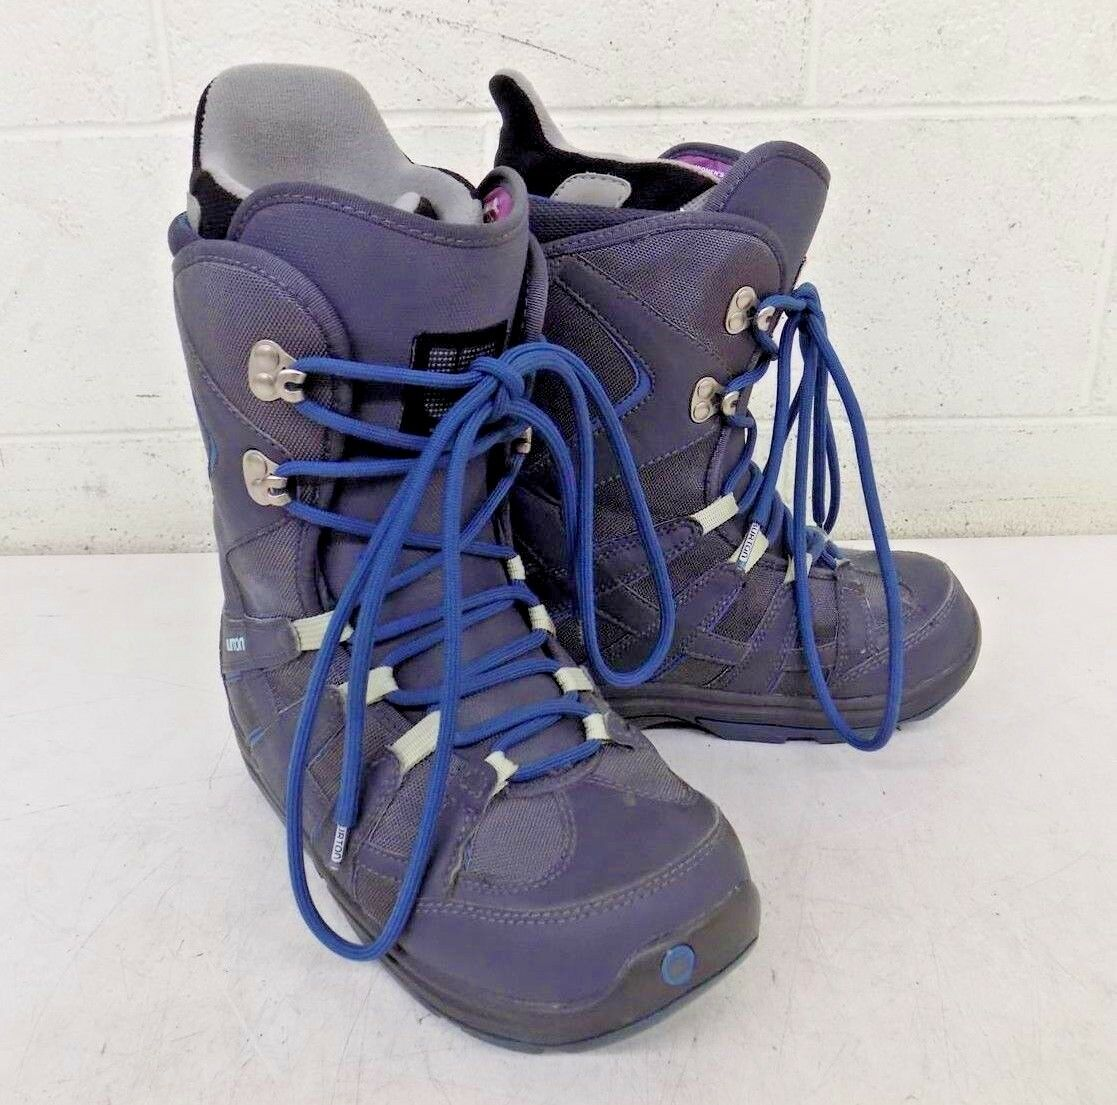 Burton Moto High-Quality Women's All-Mountain Snowboard Boots US 8 GREAT